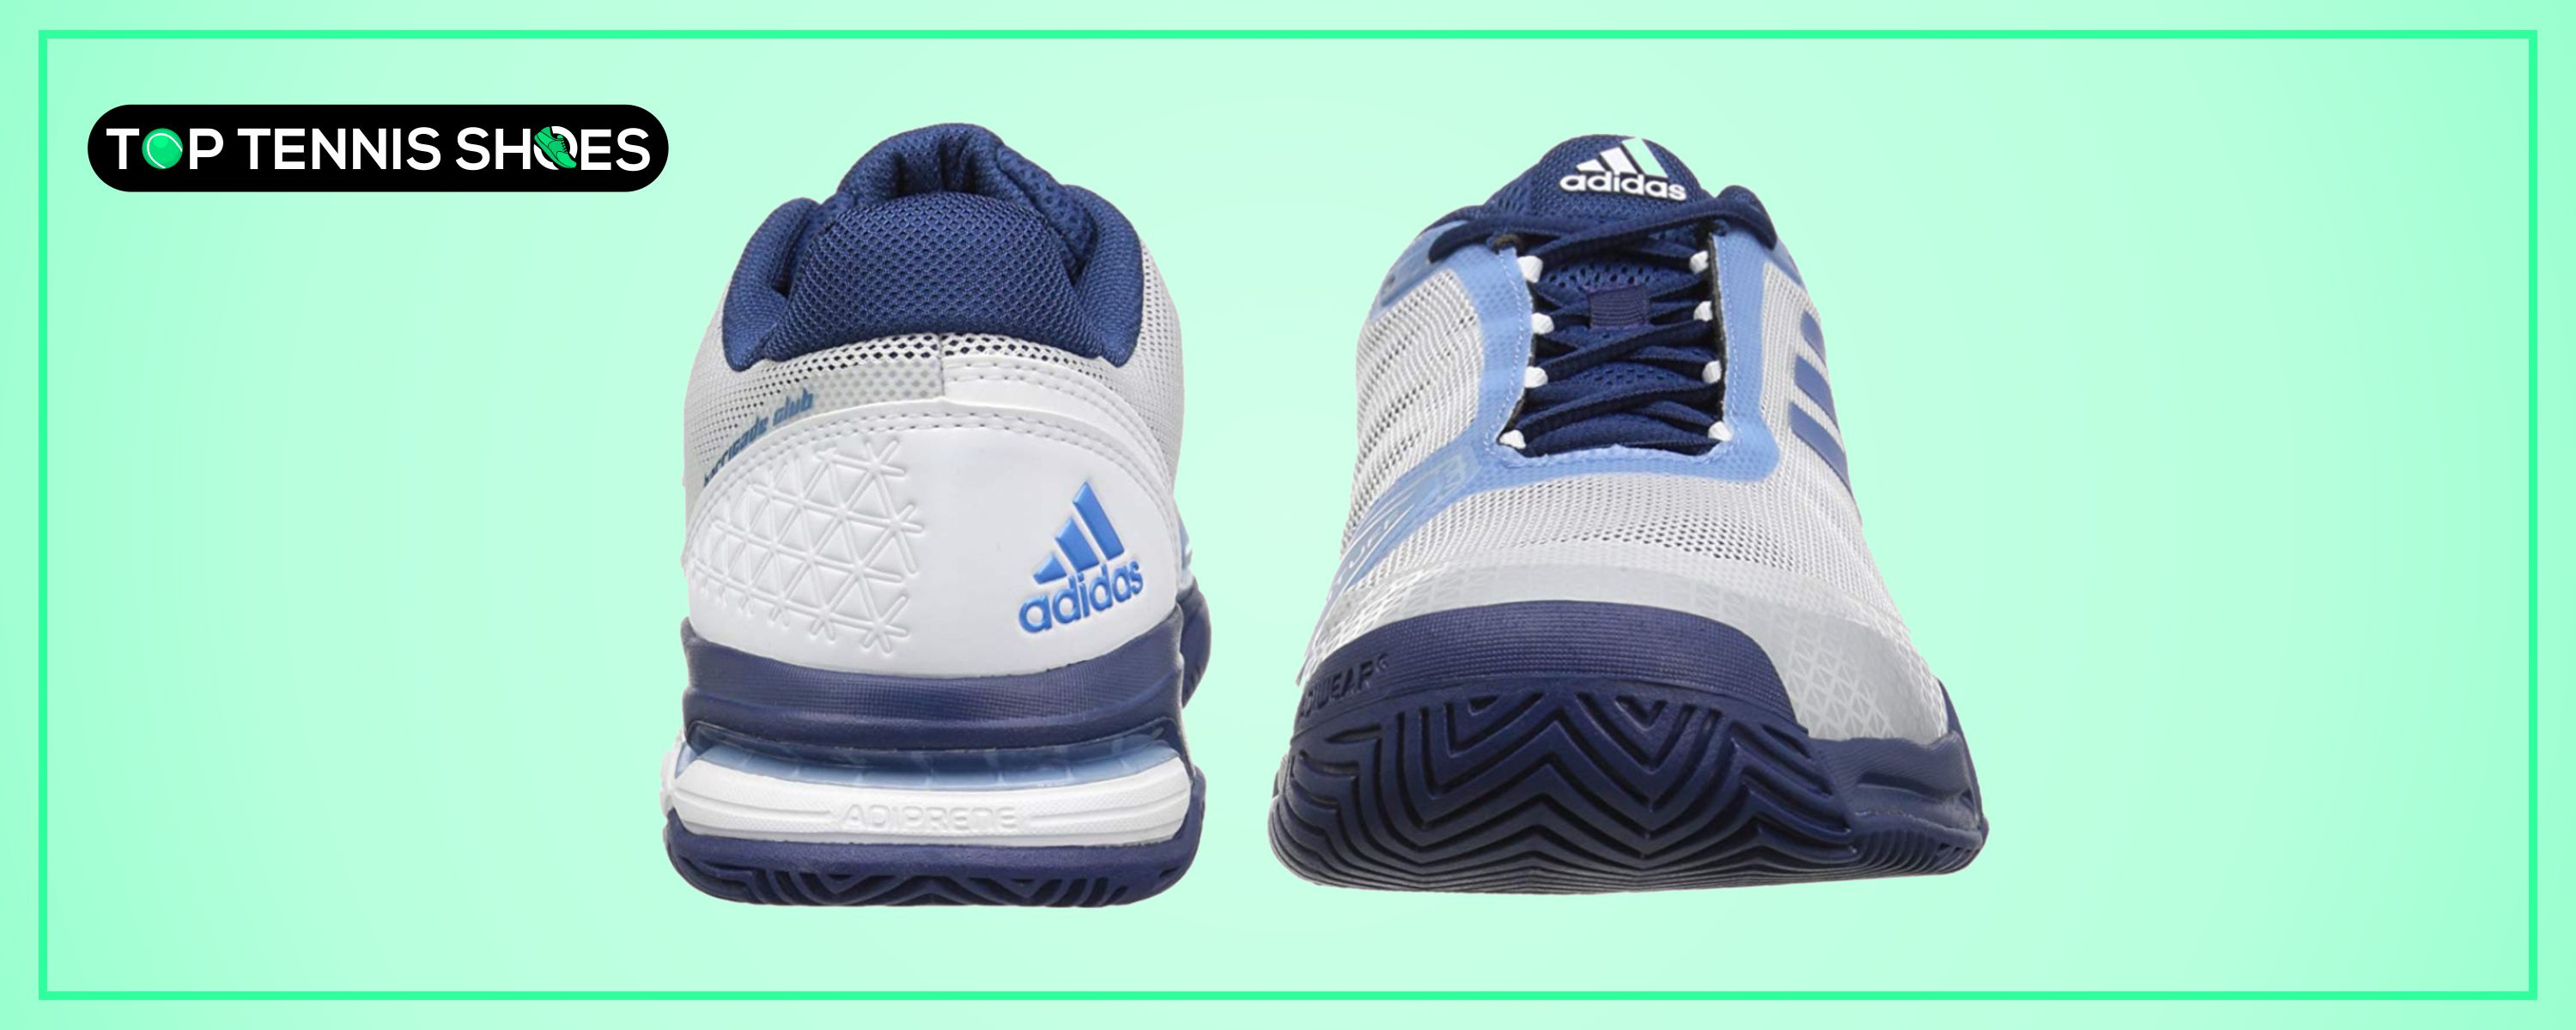 best tennis shoes for hard court players